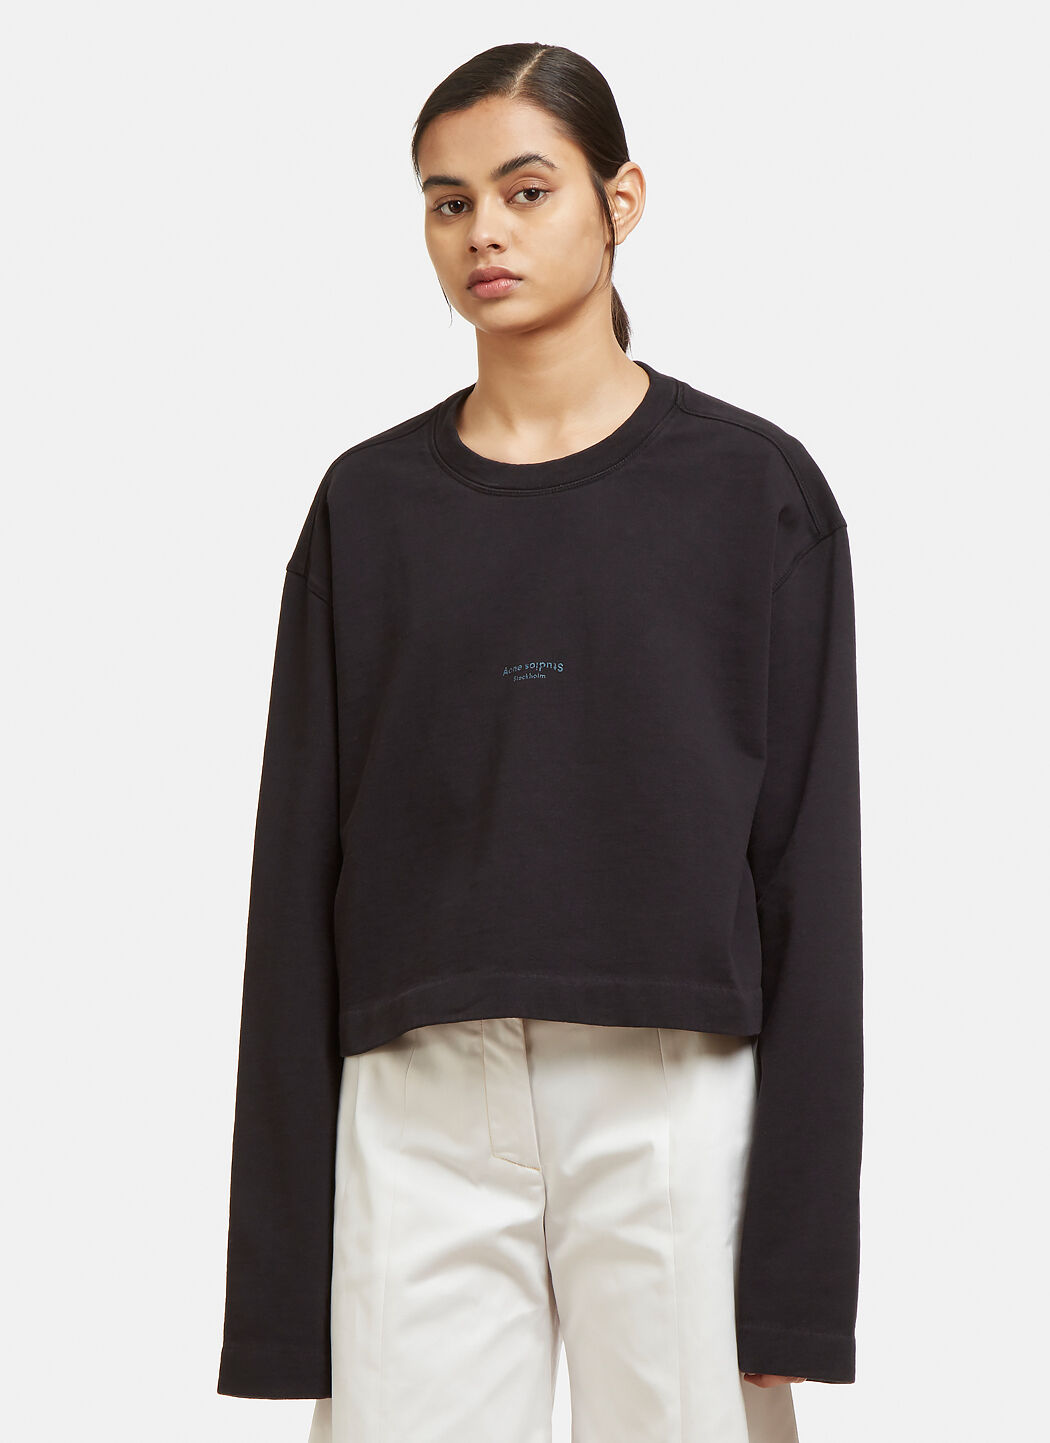 Stockist Online Cheap Price From China Odice Sweater in Black Acne Studios Largest Supplier For Sale Purchase Cheap Get New JnrjxHrPu